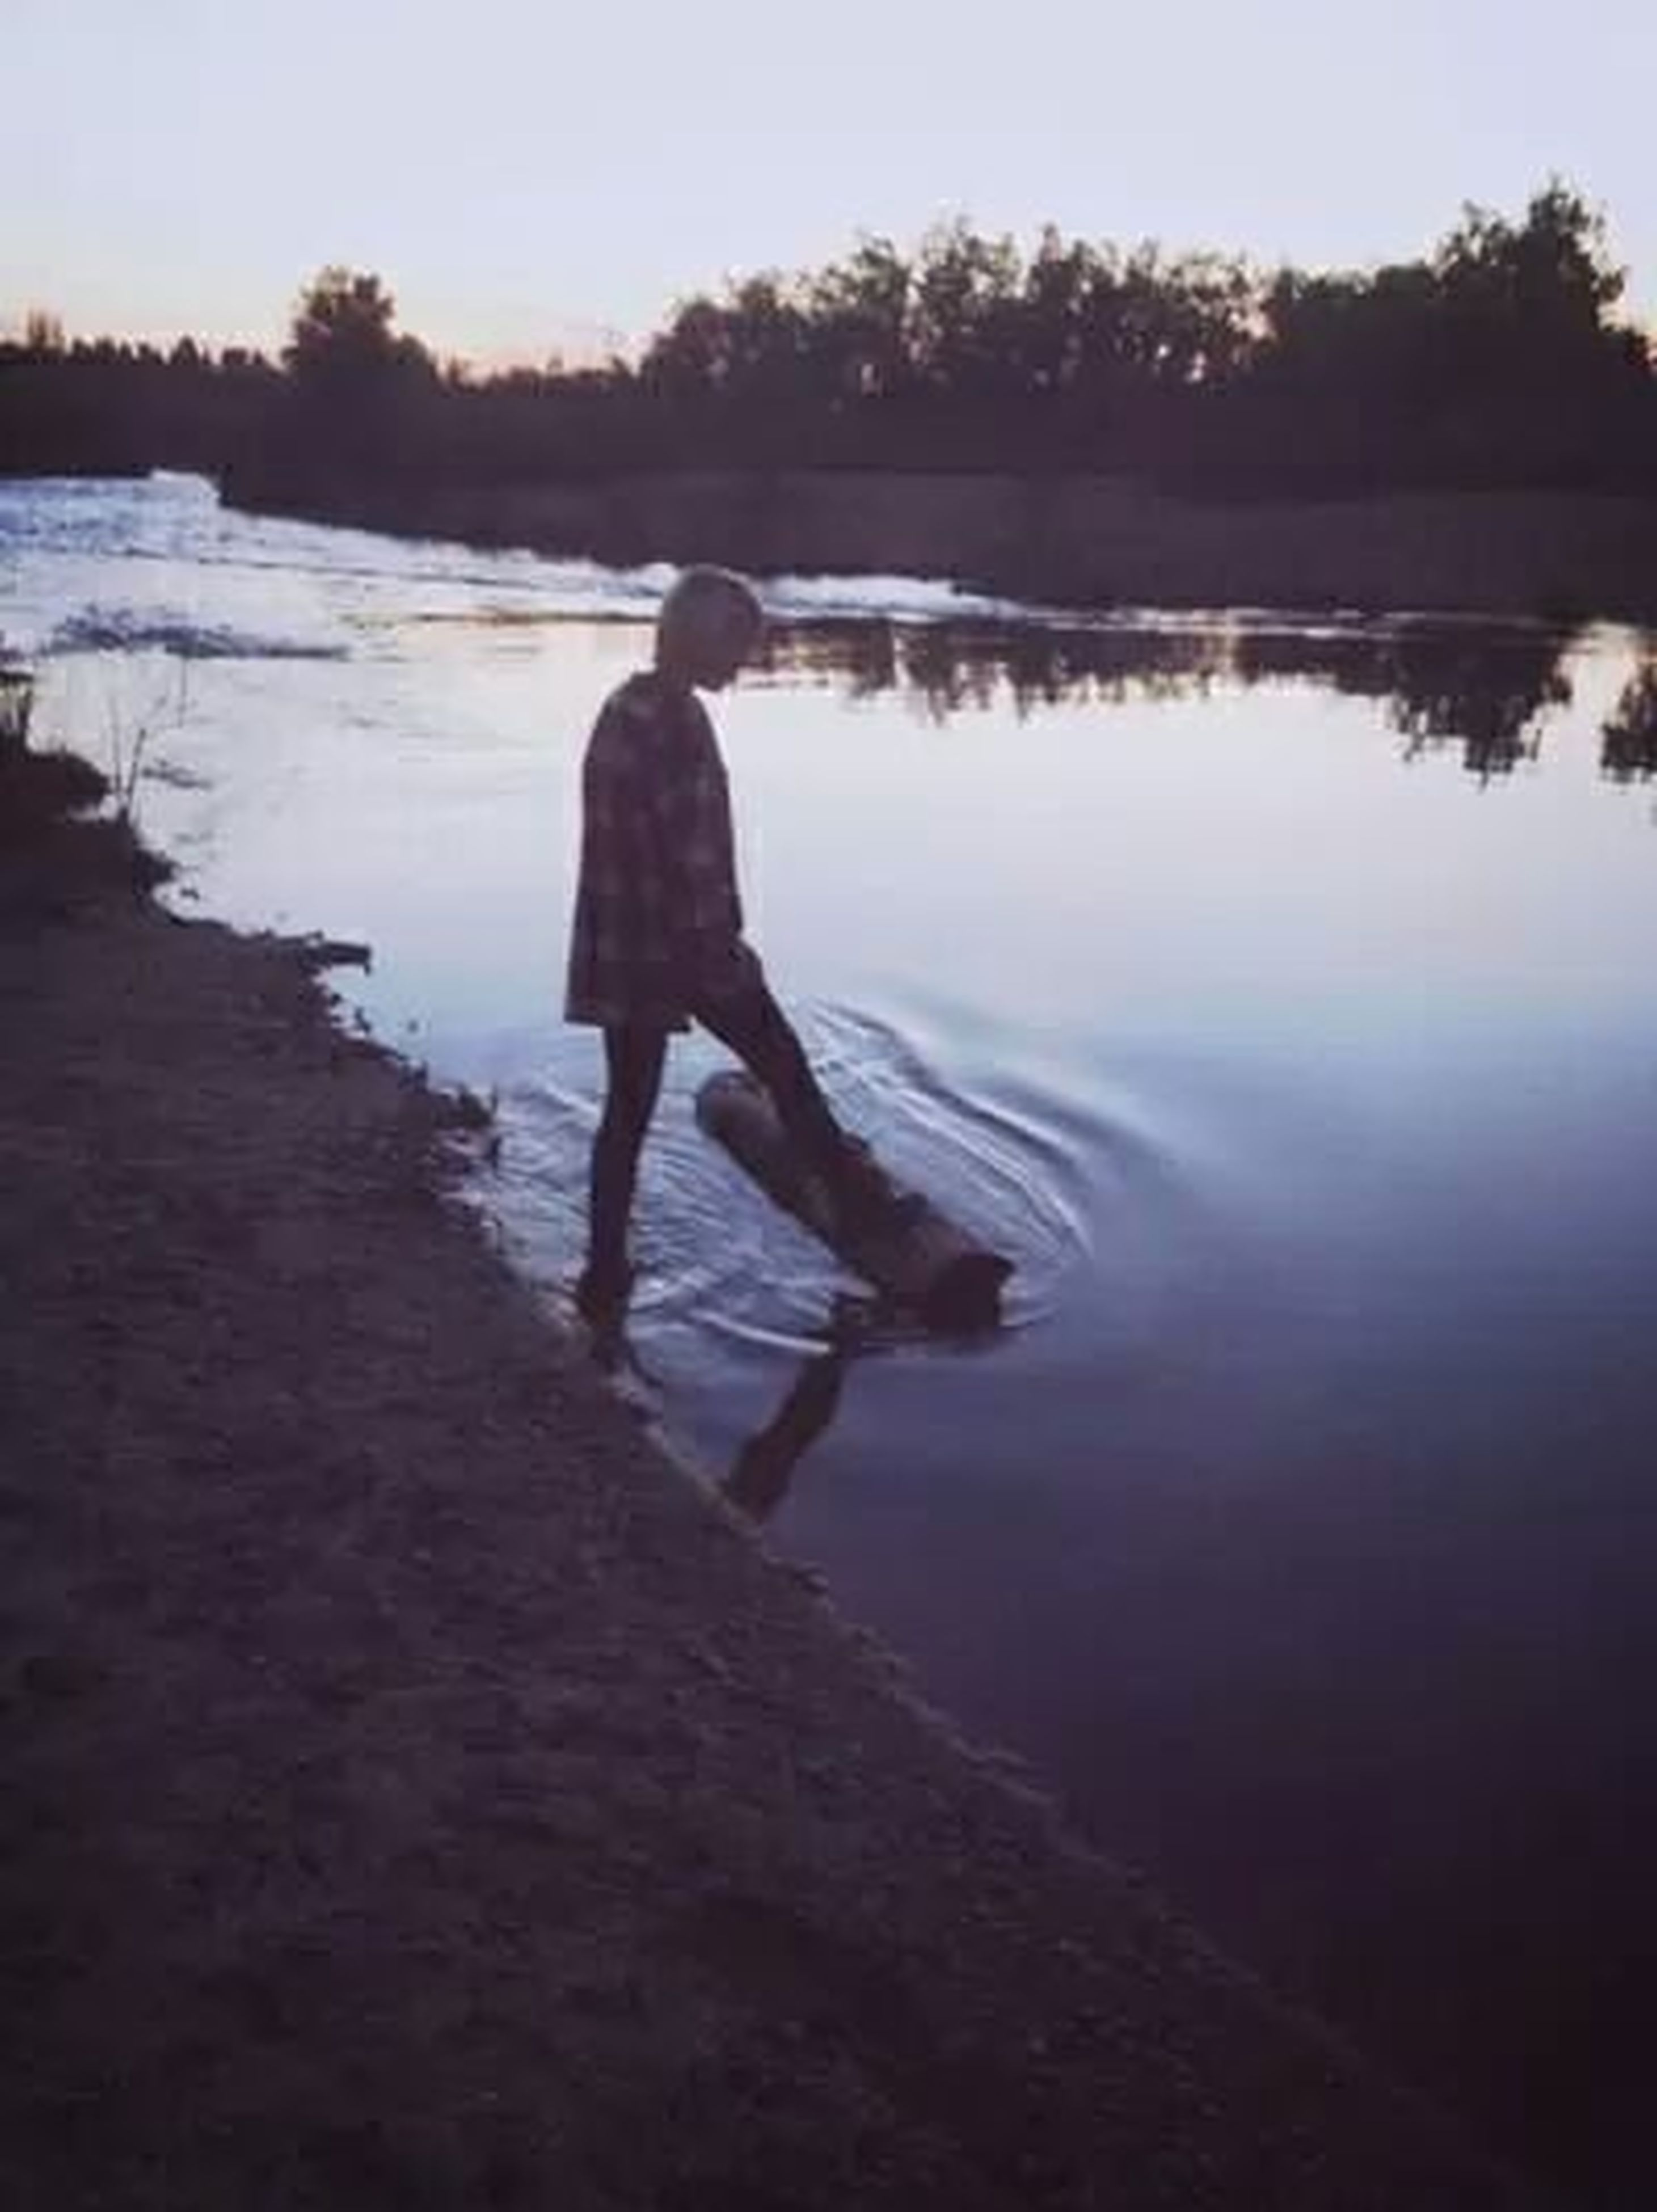 full length, water, lifestyles, leisure activity, rear view, standing, lake, tranquility, silhouette, tranquil scene, reflection, nature, scenics, sky, beauty in nature, casual clothing, walking, sunset